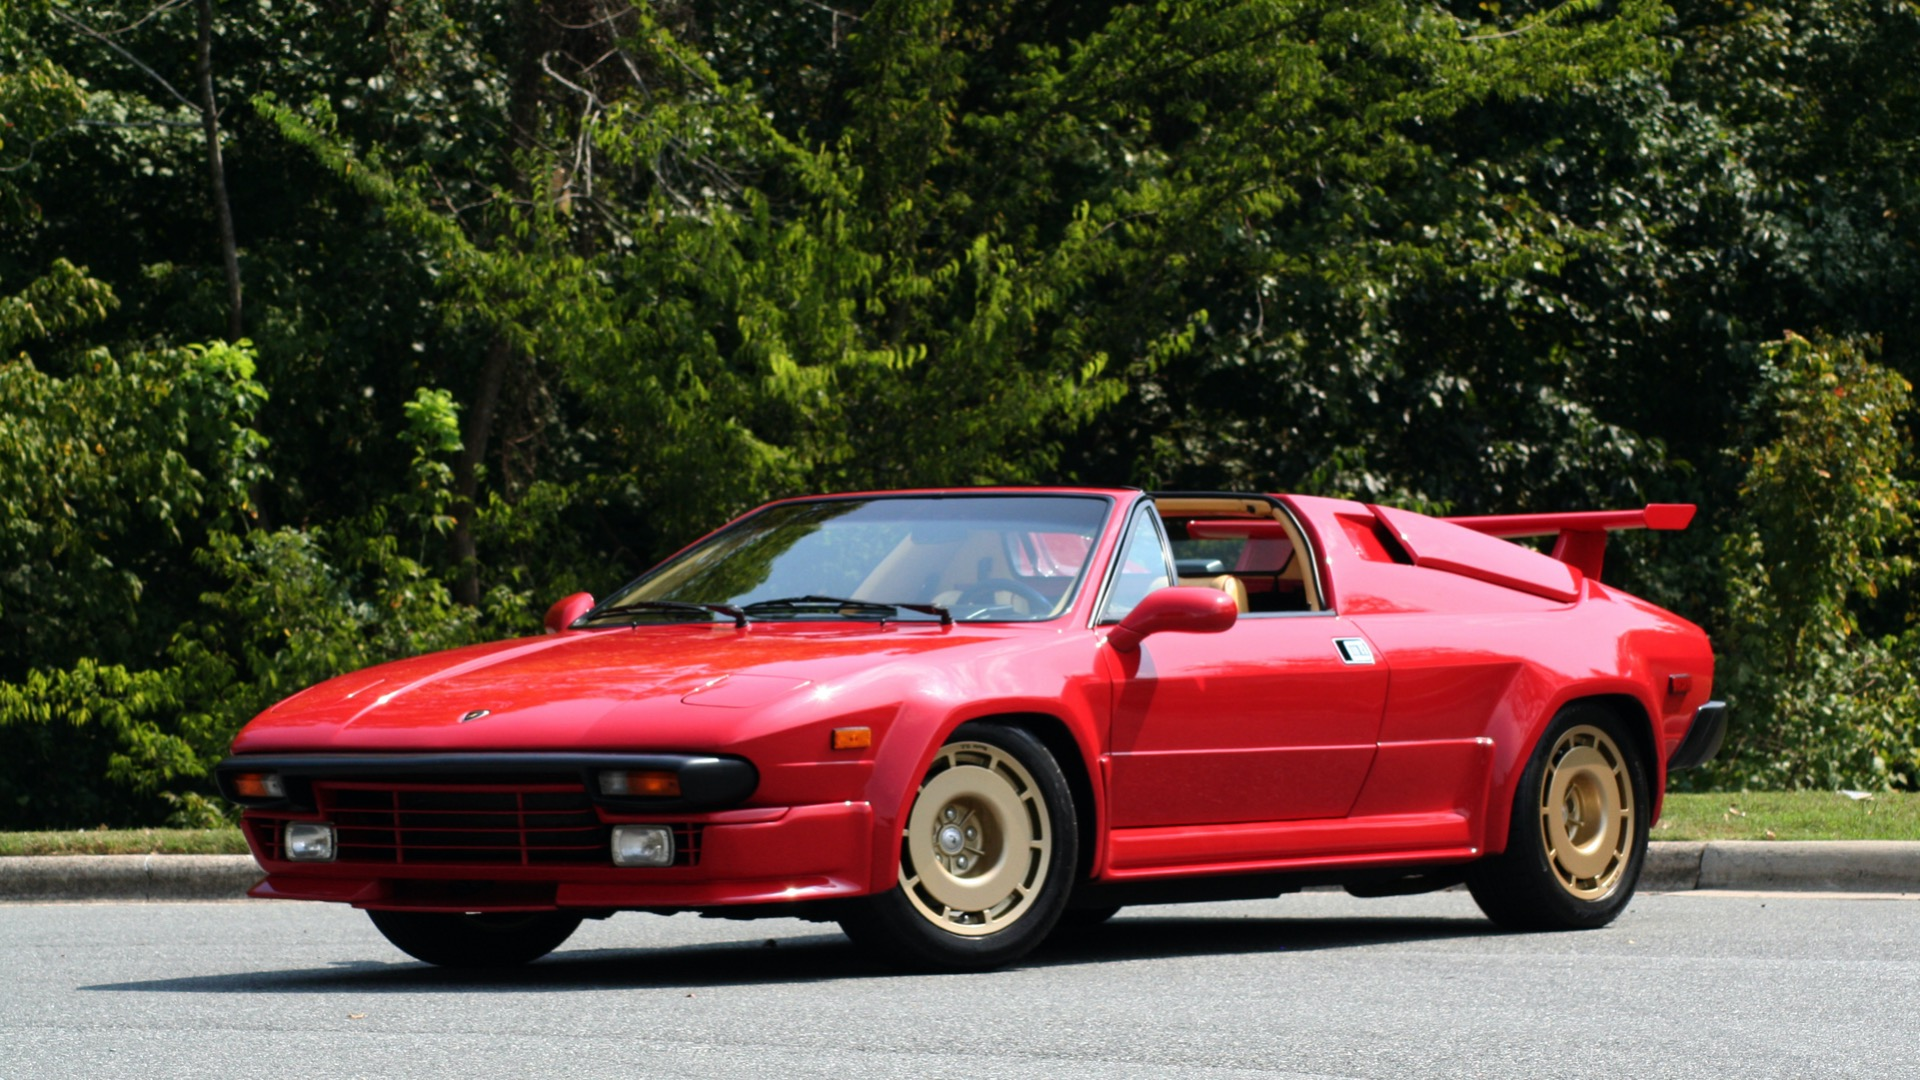 Used 1988 Lamborghini JALPA 3.5 / 5-SPD MANUAL / LOW MILES / EXCELLENT CONDITION for sale Sold at Formula Imports in Charlotte NC 28227 1